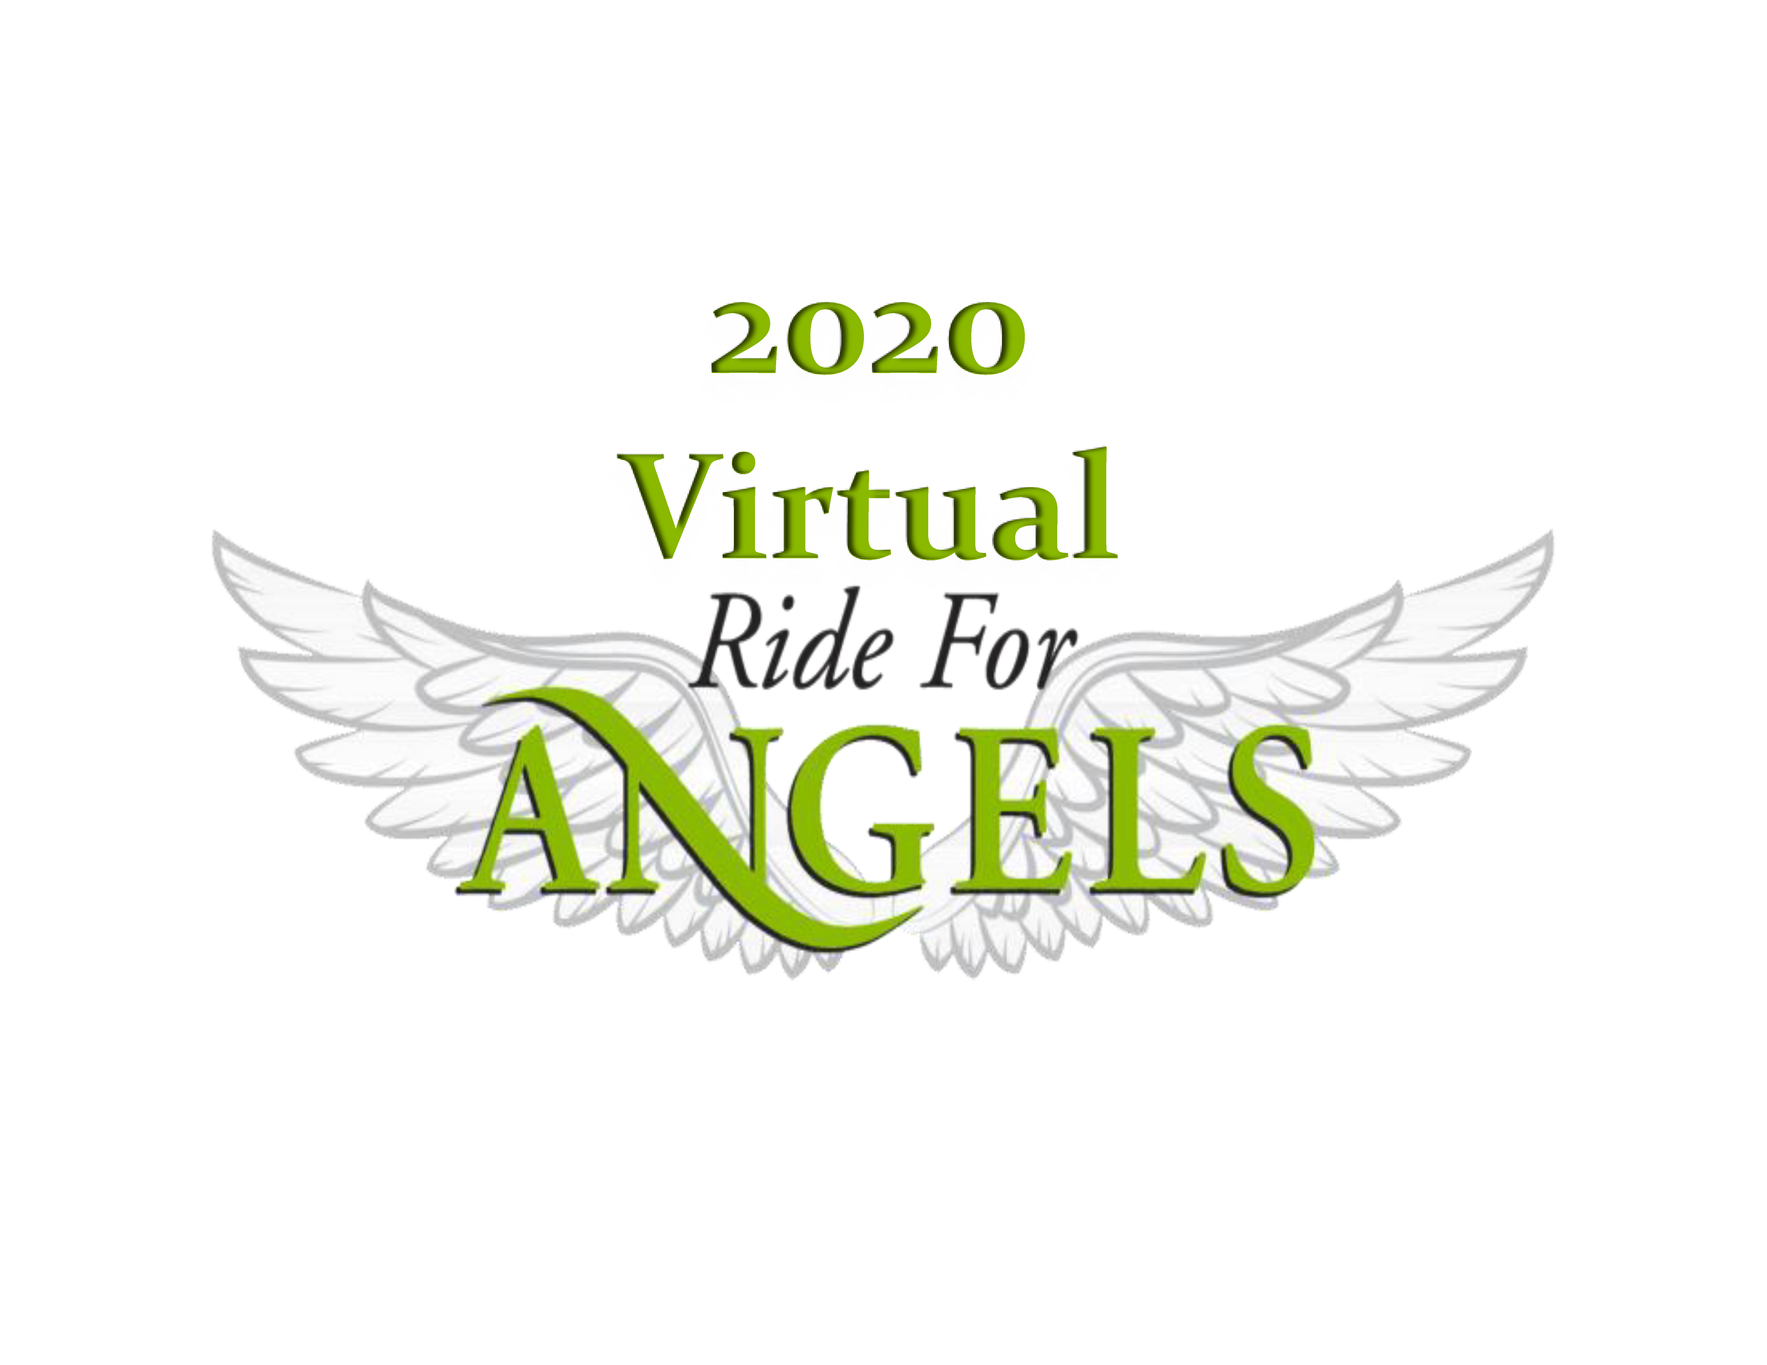 2020 Annual Ride For Angels image